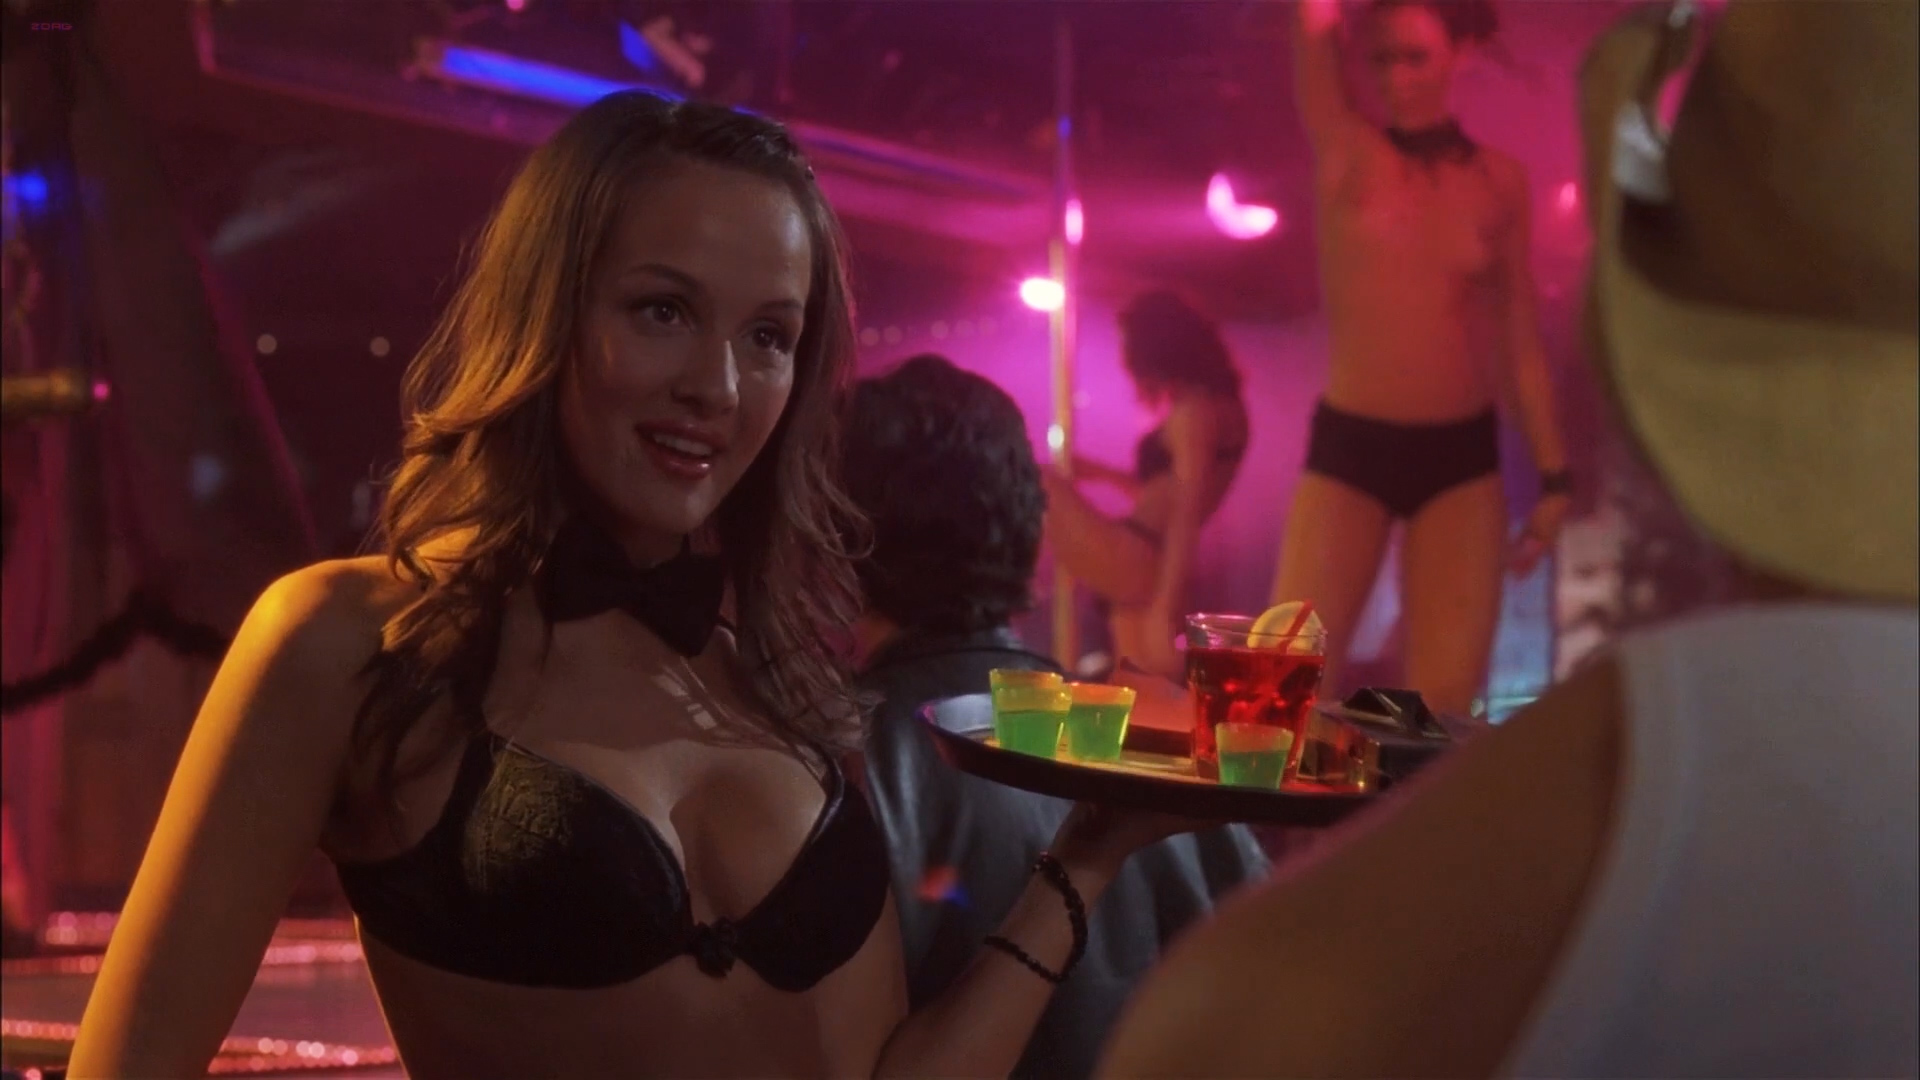 Naked pics of crystal lowe remarkable